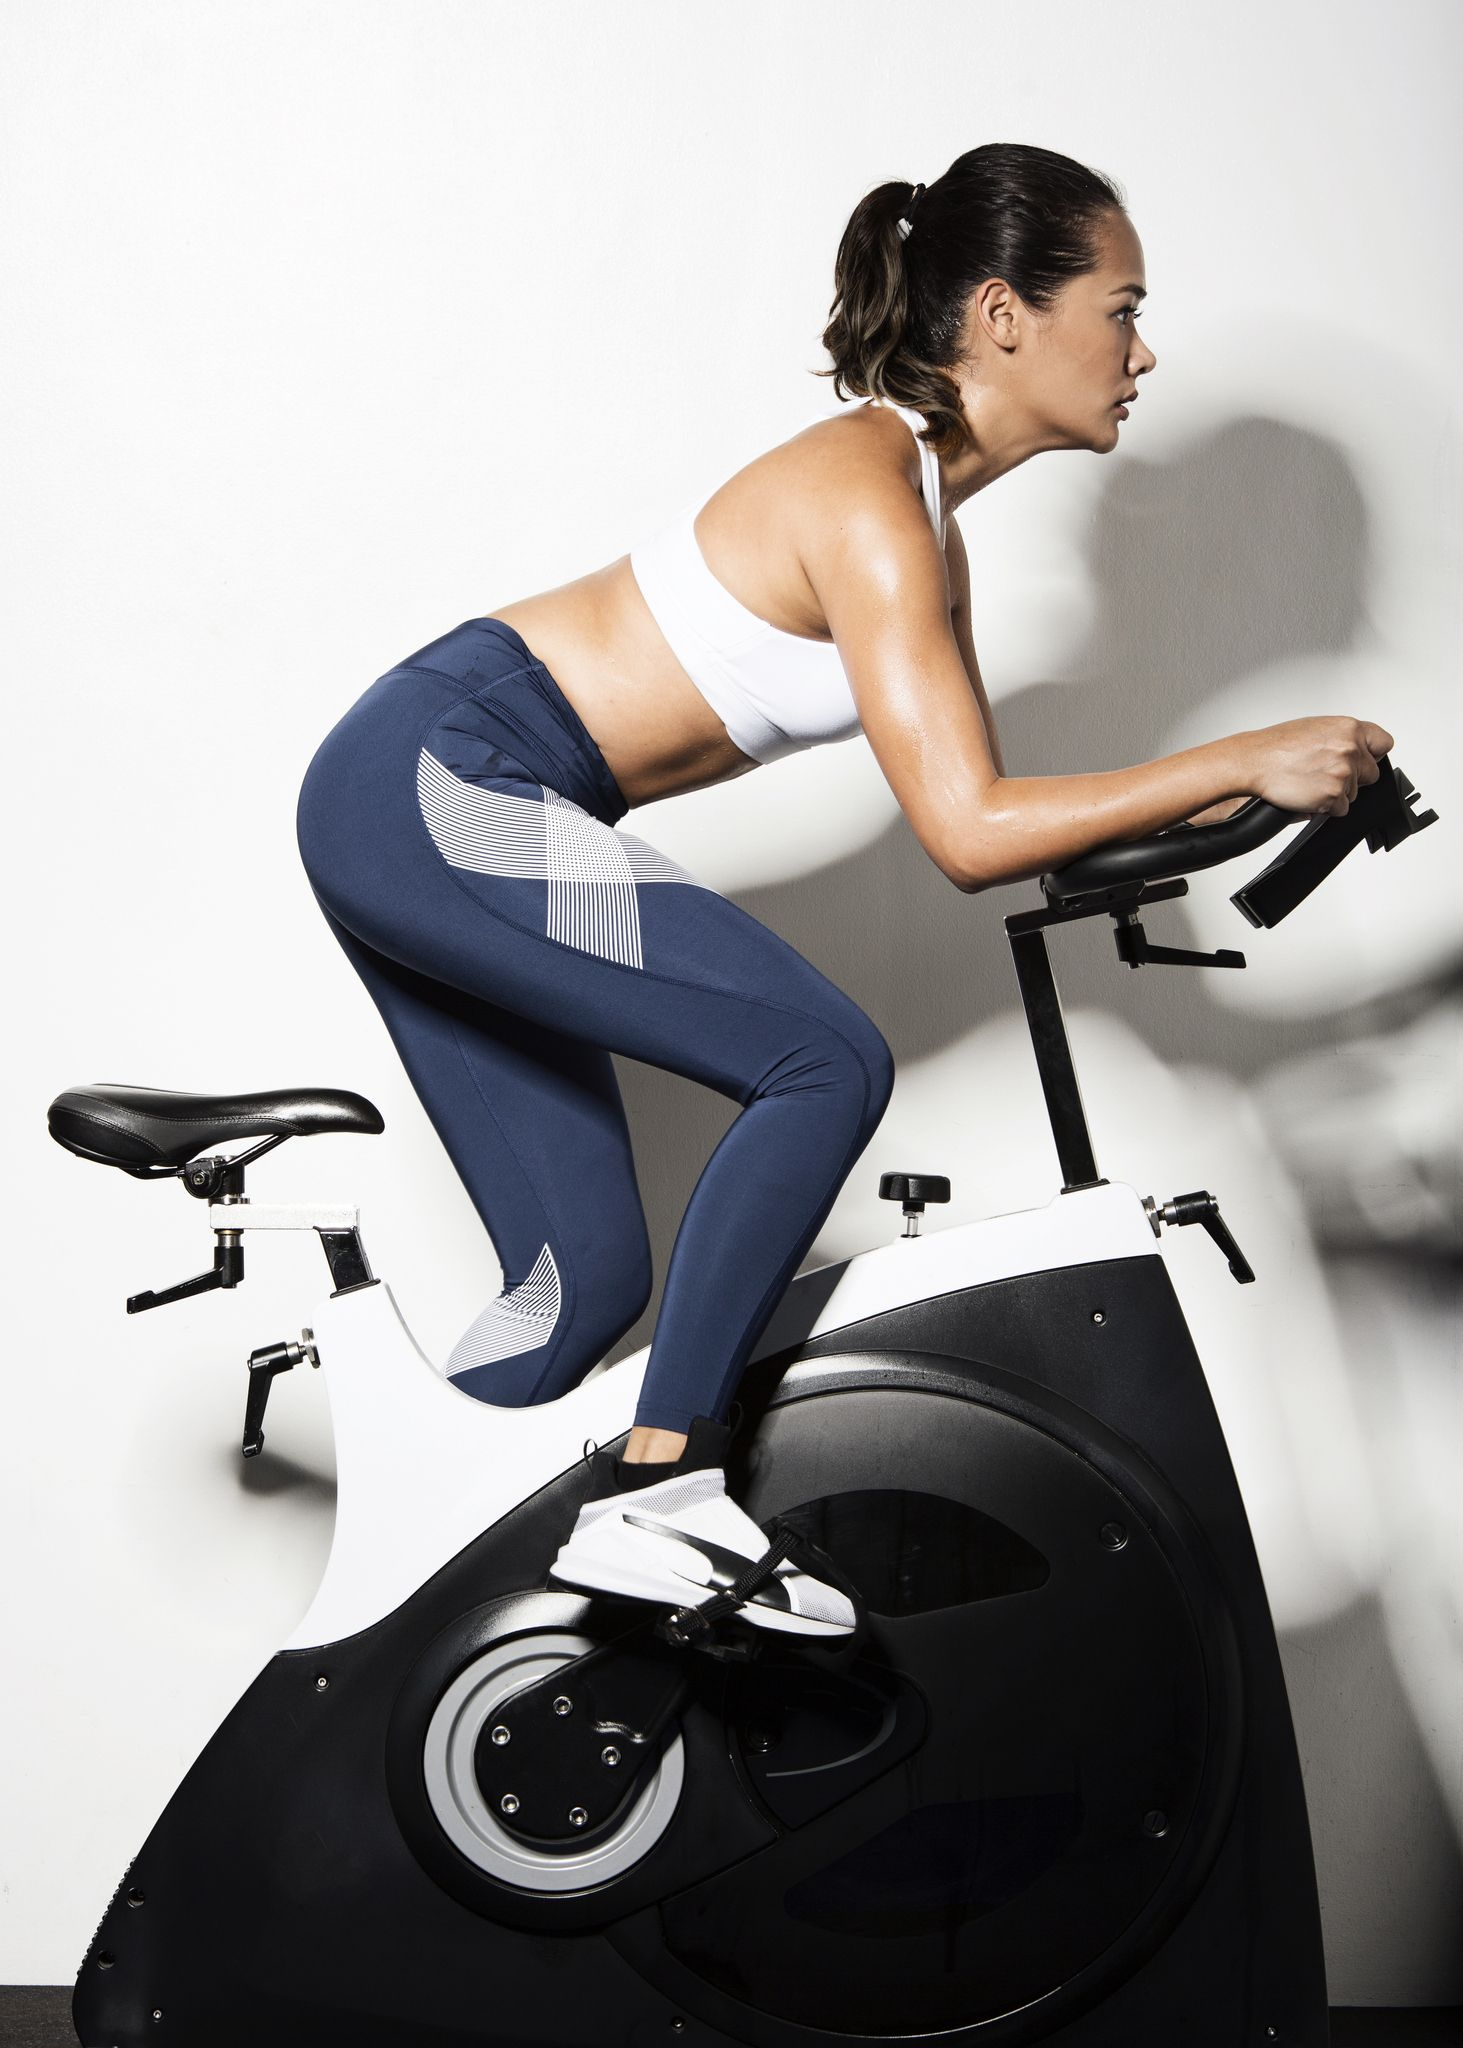 What You Need To Know About Doing Cycling Classes For Weight Loss